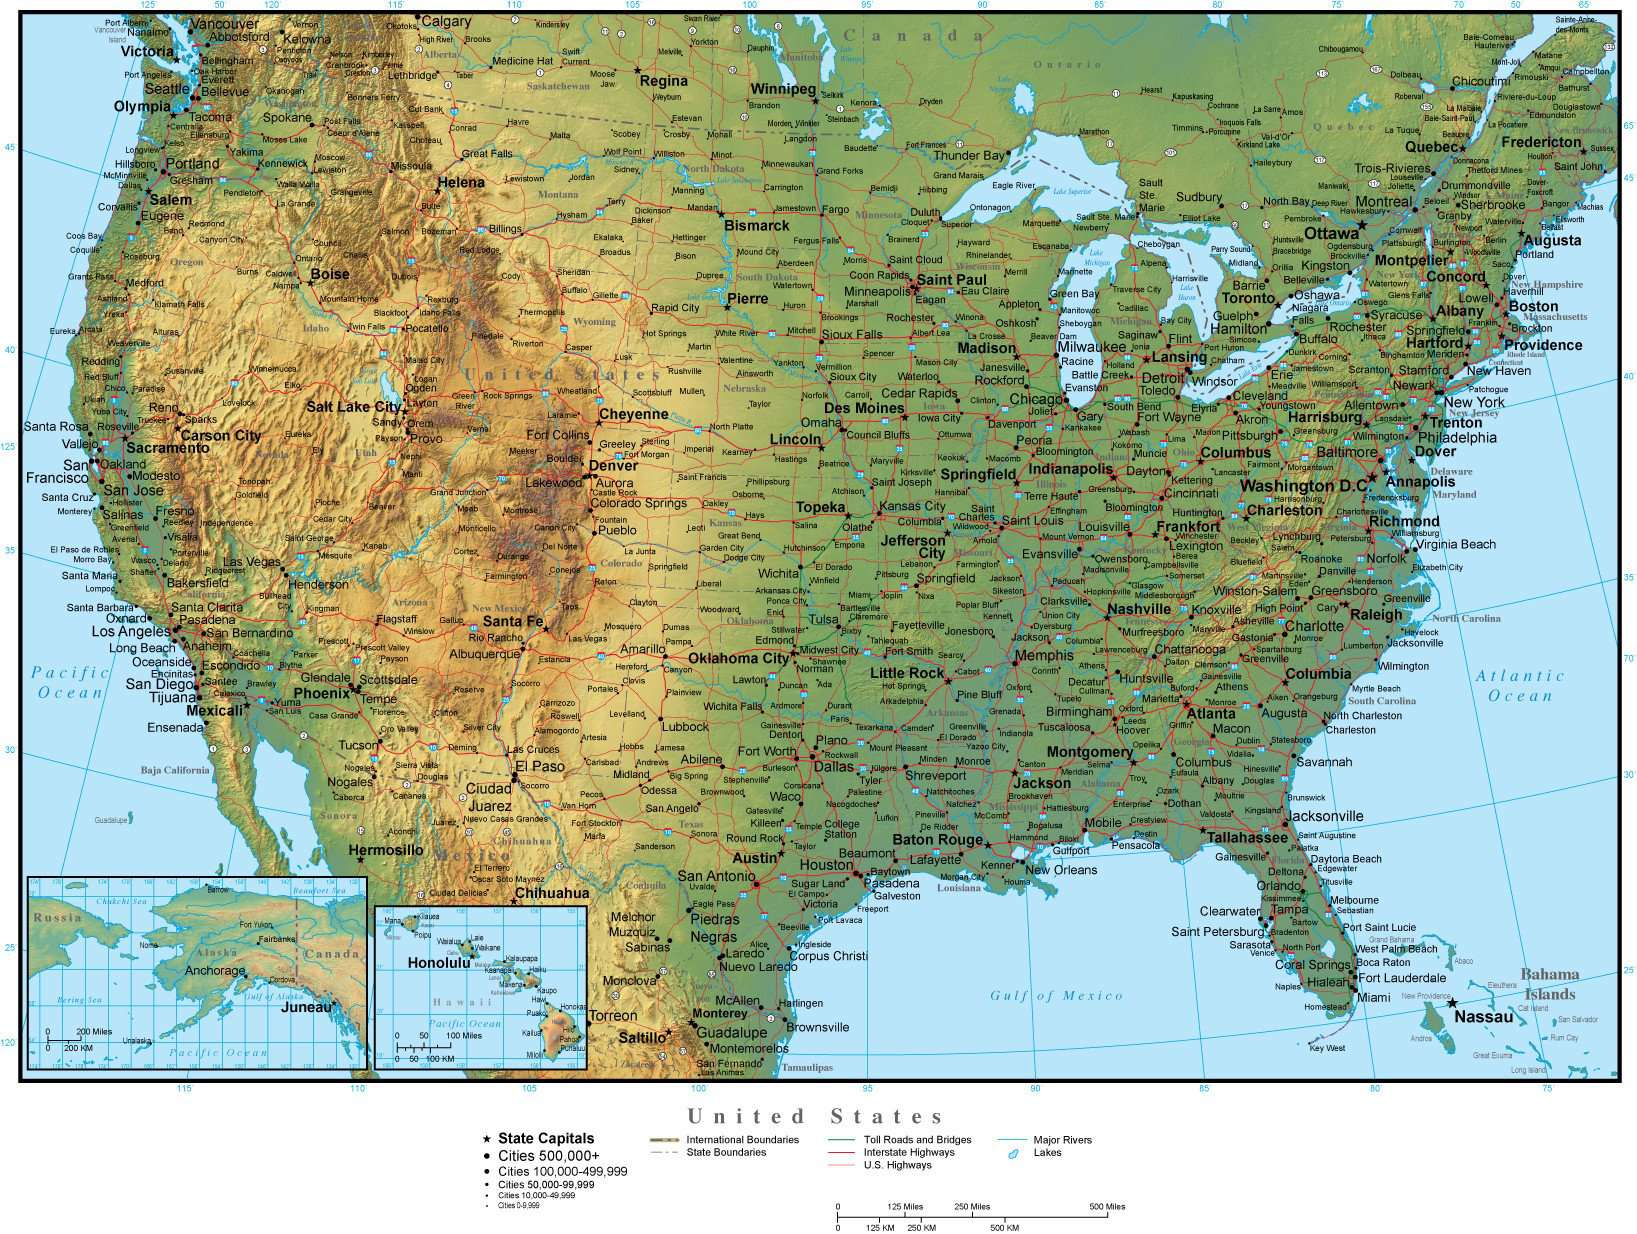 Geography Blog US Maps Time Zones World Map Time Zones Wallpaper - Indiana map of usa